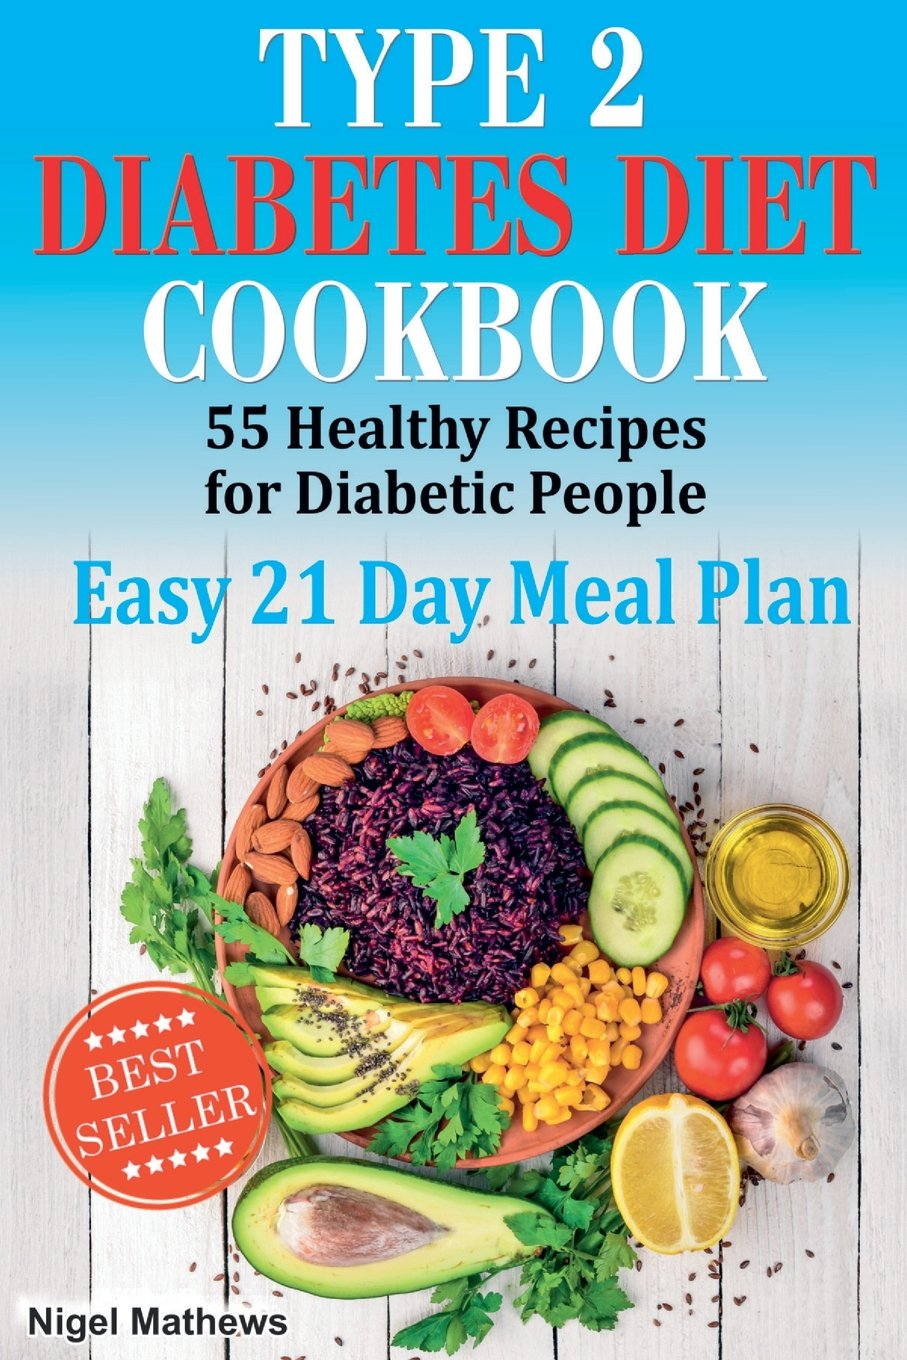 Type 2 Diabetes Diet Cookbook Meal Plan 55 Healthy Recipes For